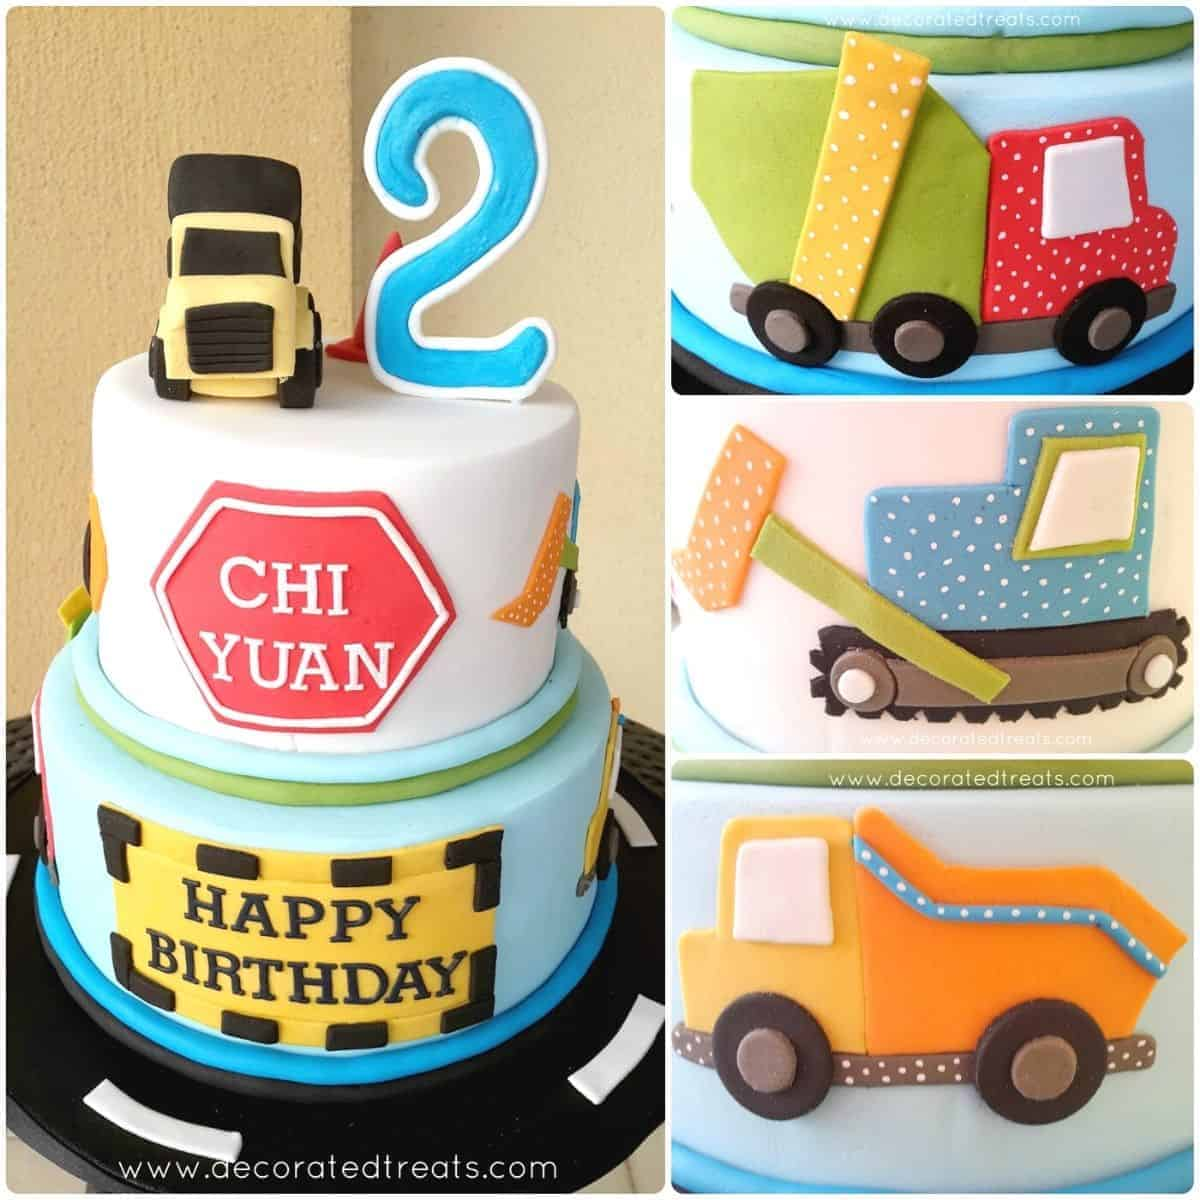 Truck Cake For 2nd Birthday A Decorating Tutorial Decorated Treats